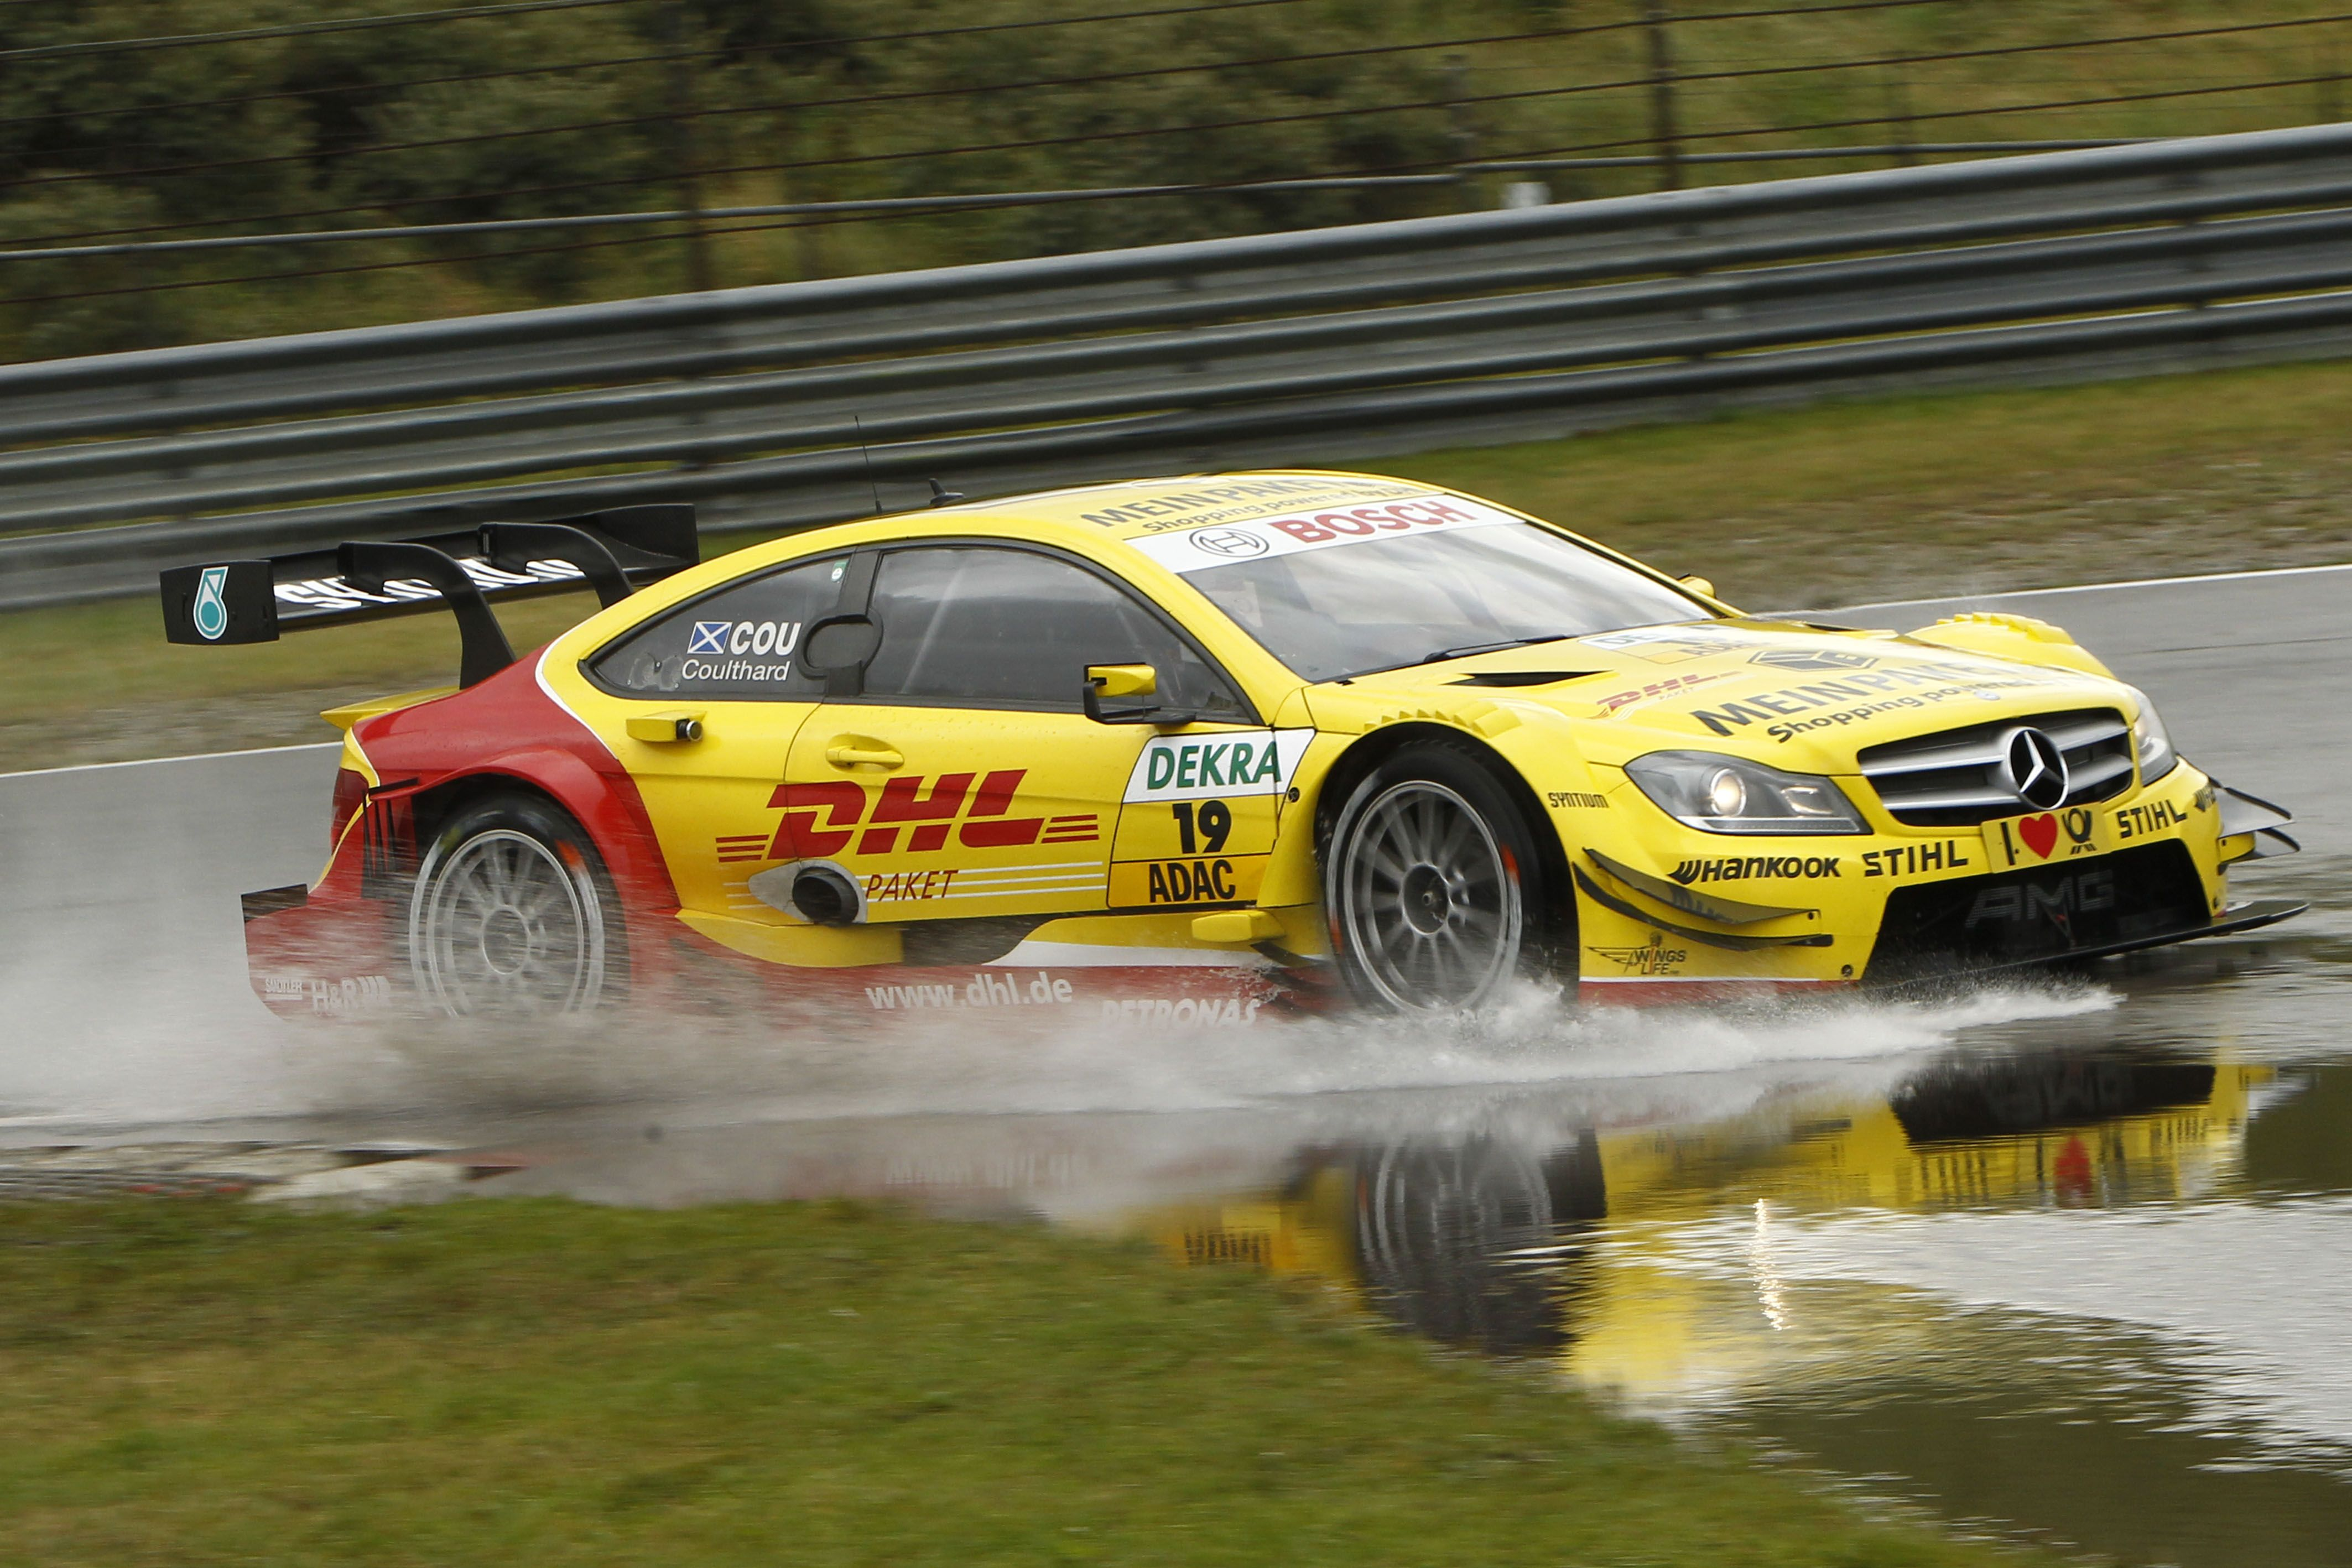 David Coulthard, DHL Paket Mercedes AMG C-Coupé - yellow car ...